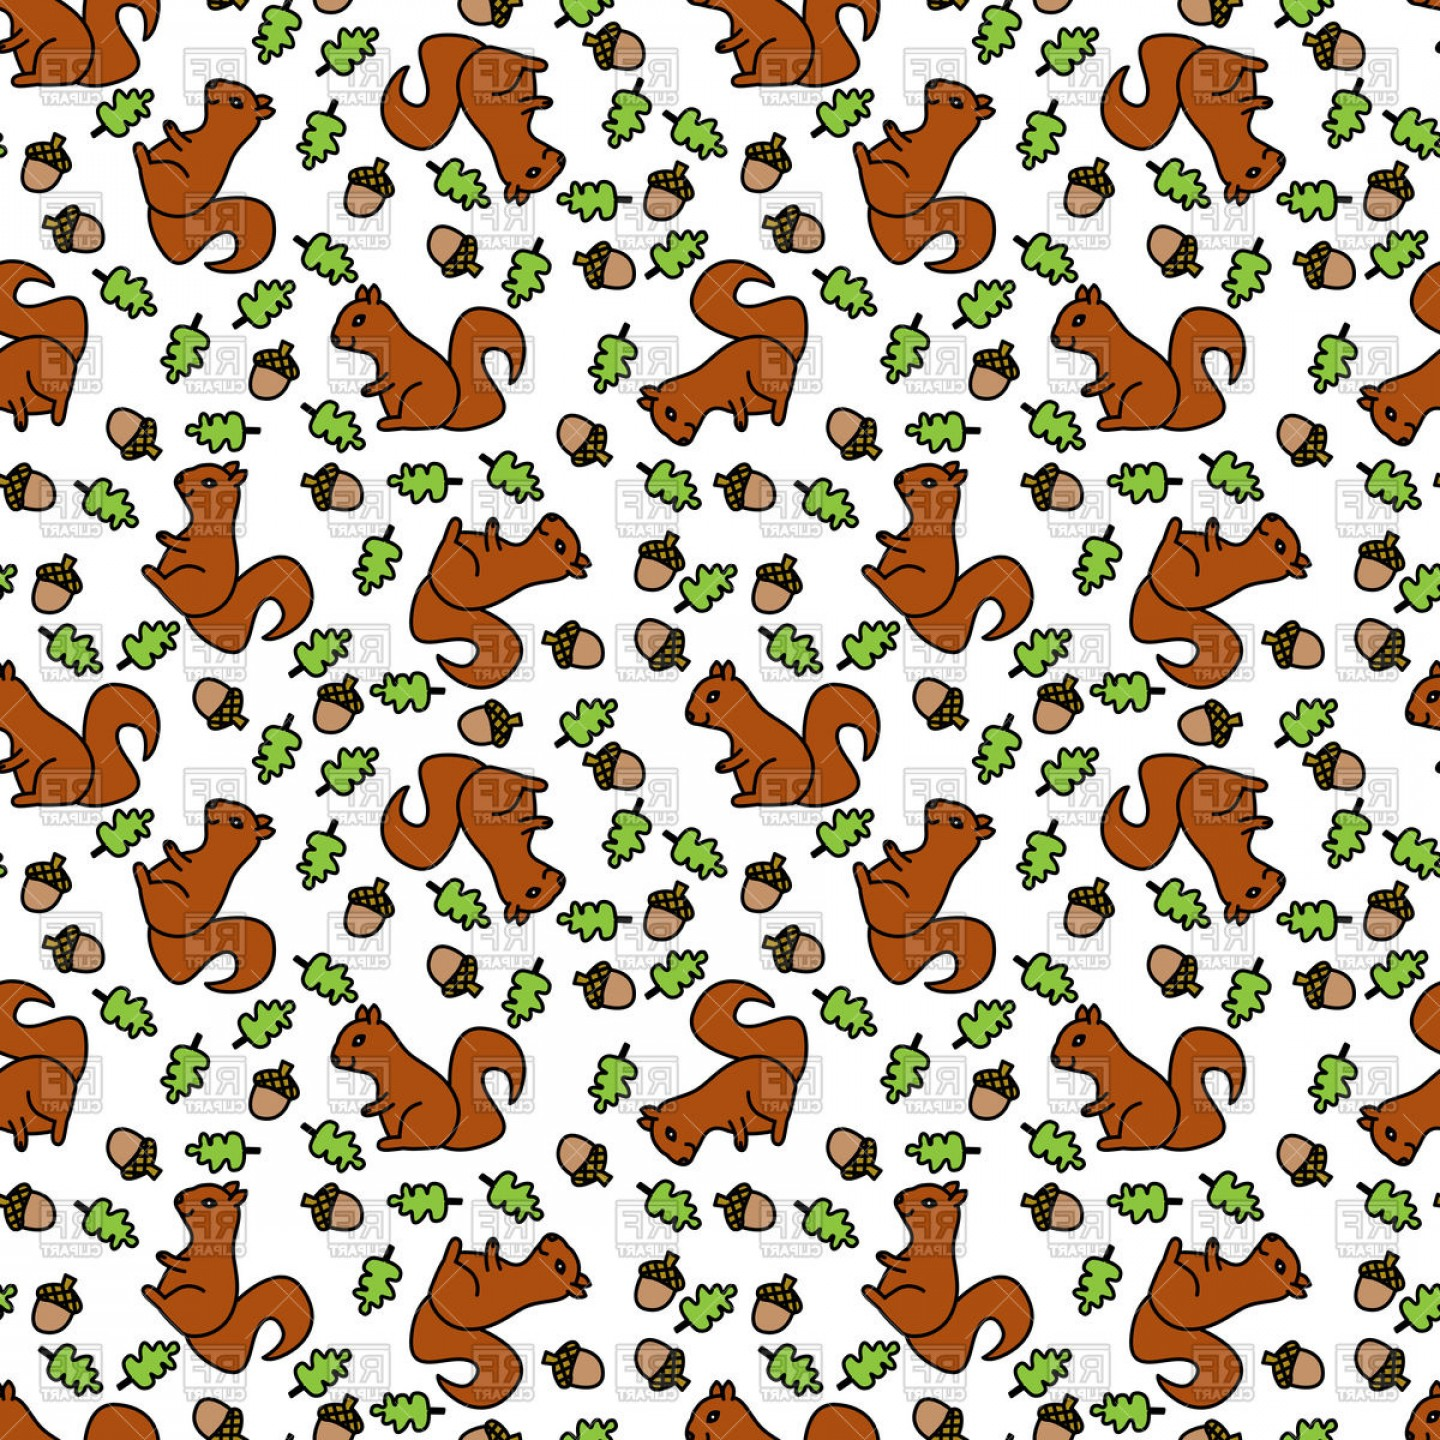 Oak Leaf Vector Clip Art: Seamless Pattern Made Of Illustrated Squirrels And Oak Leaves And Acorns Vector Clipart